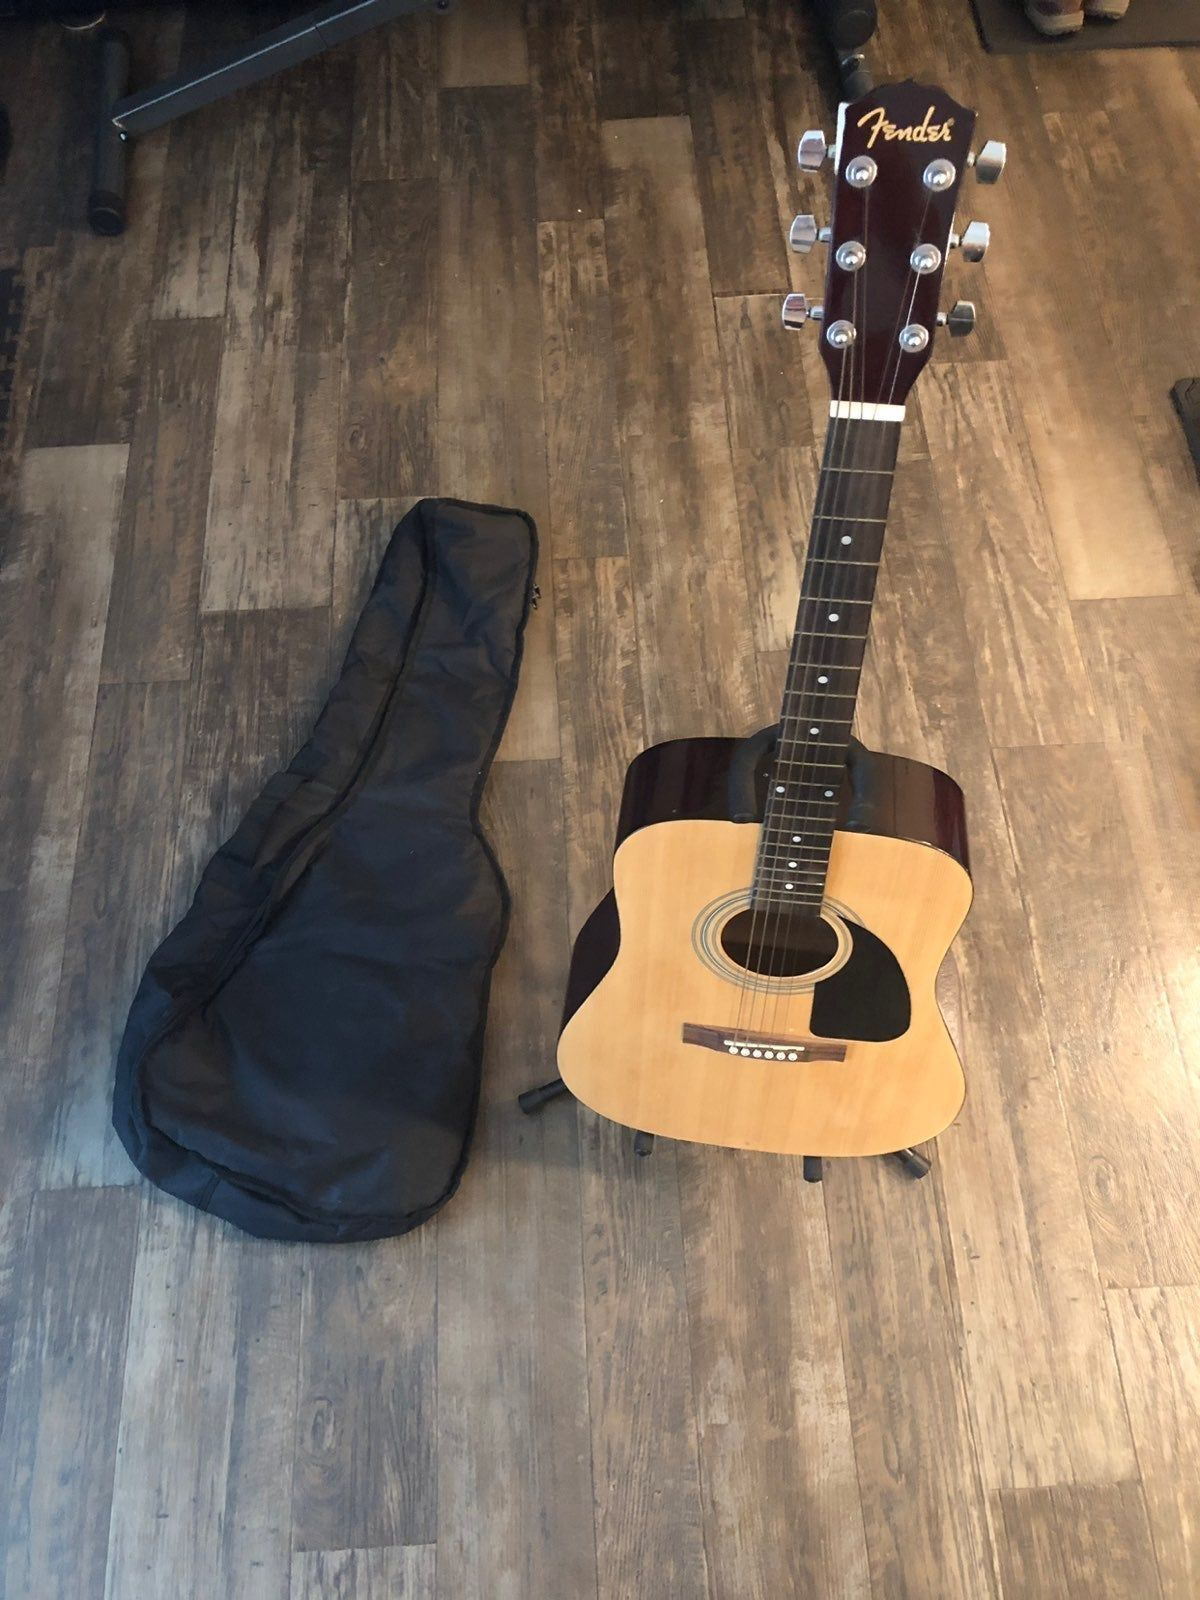 Guitar Along With Everything Shown In Pictures Included Guitar Itself Has A Chip On The Left Corner Show In Pic Guitar Fender Acoustic Fender Acoustic Guitar